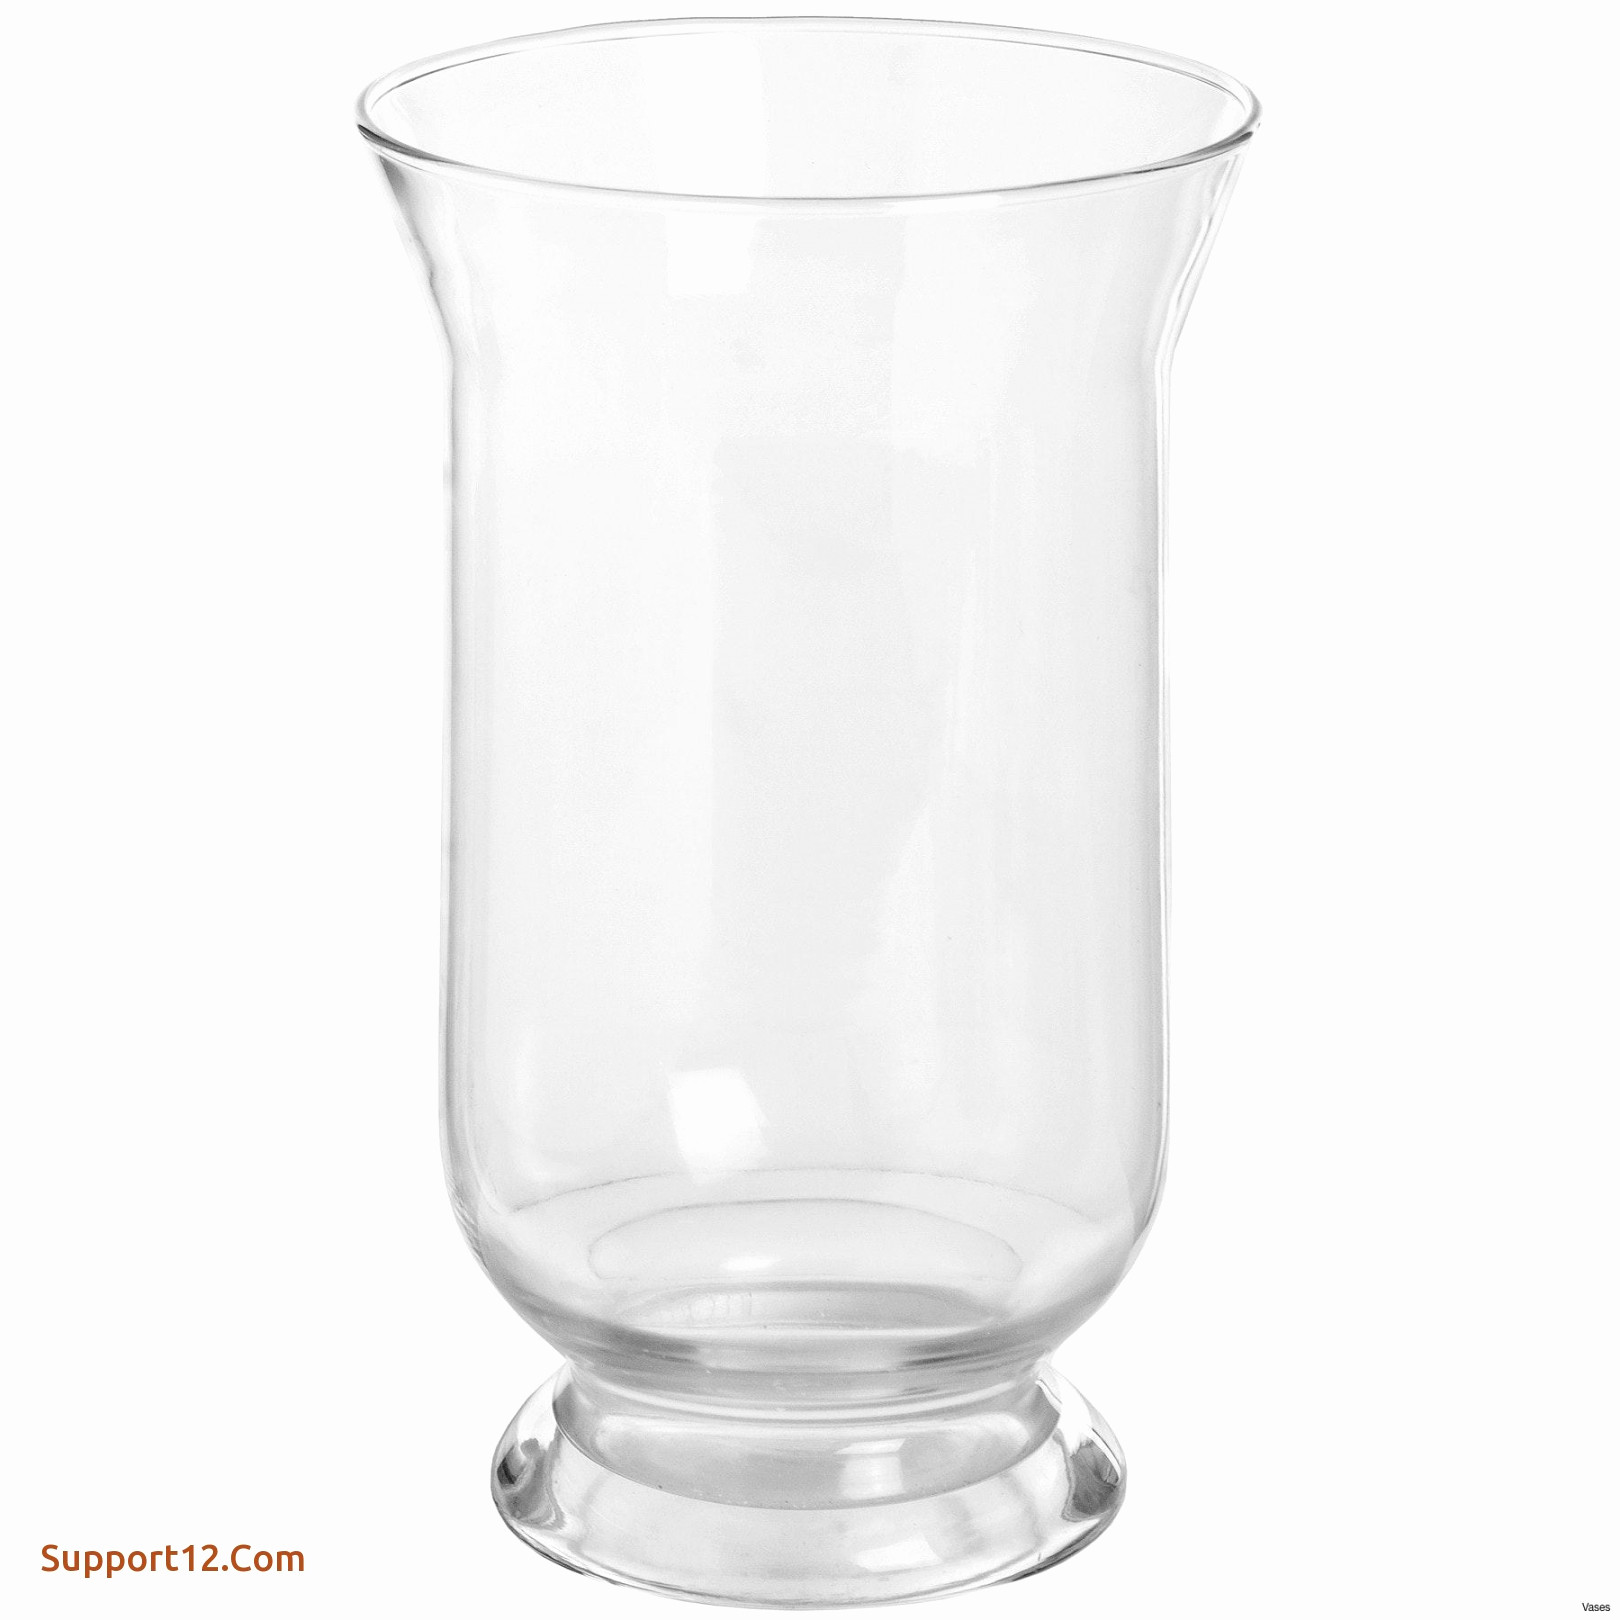 pedestal bowl vase of 50 fresh images of square glass vases bulk kendallquack com throughout square glass vases bulk best of lovely tall pedestal cylinder glass vase support12